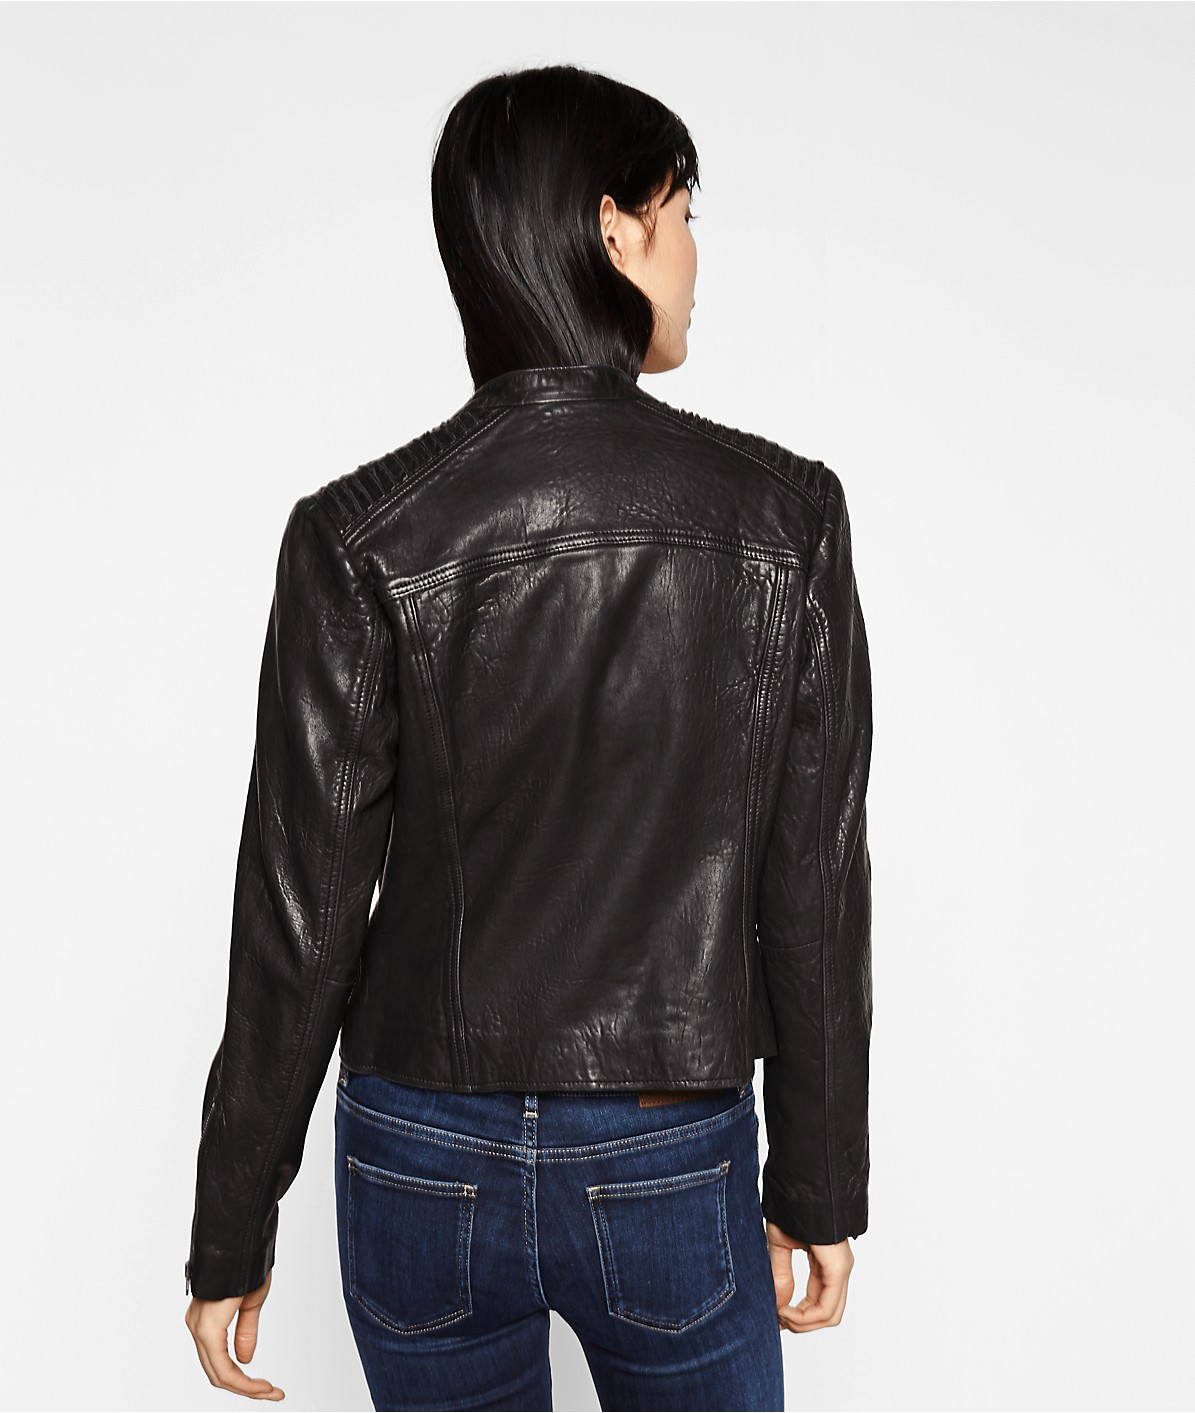 Leather jacket F1175003 from liebeskind